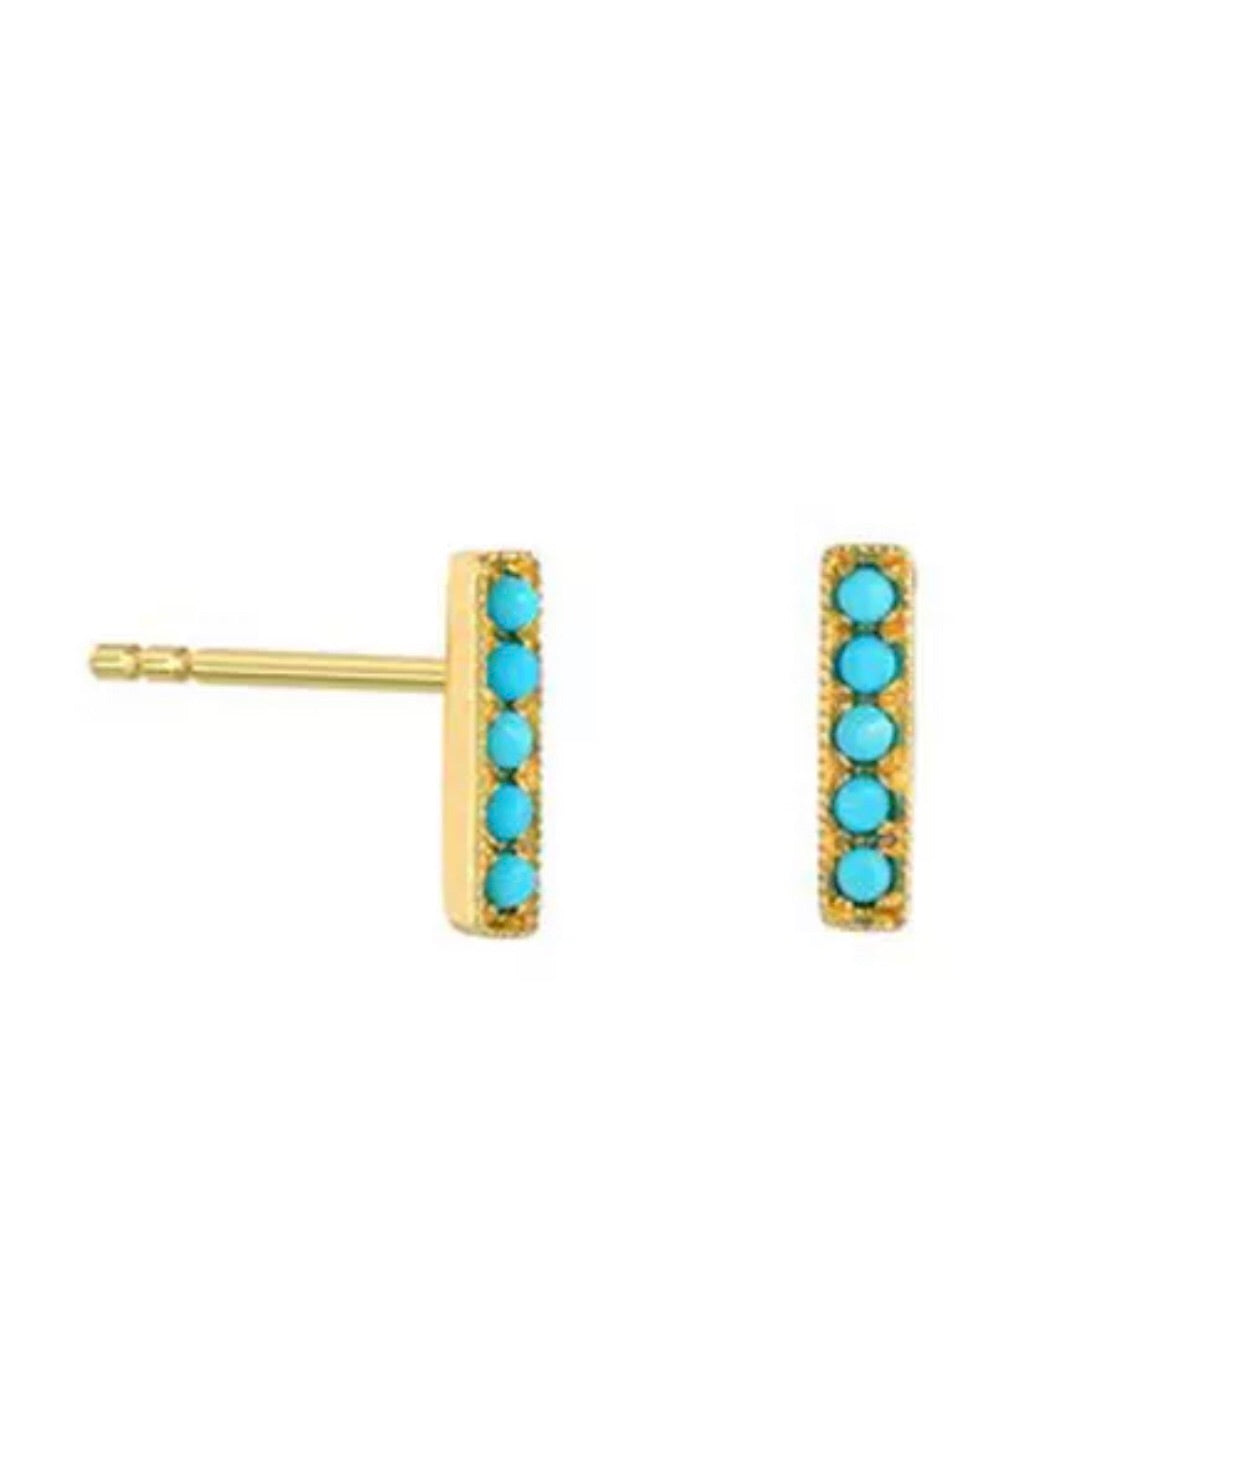 90c35215a Natural Diamond Multi Color Gemstone Turquoise Solid 14K Gold T Bar Stud  Earrings